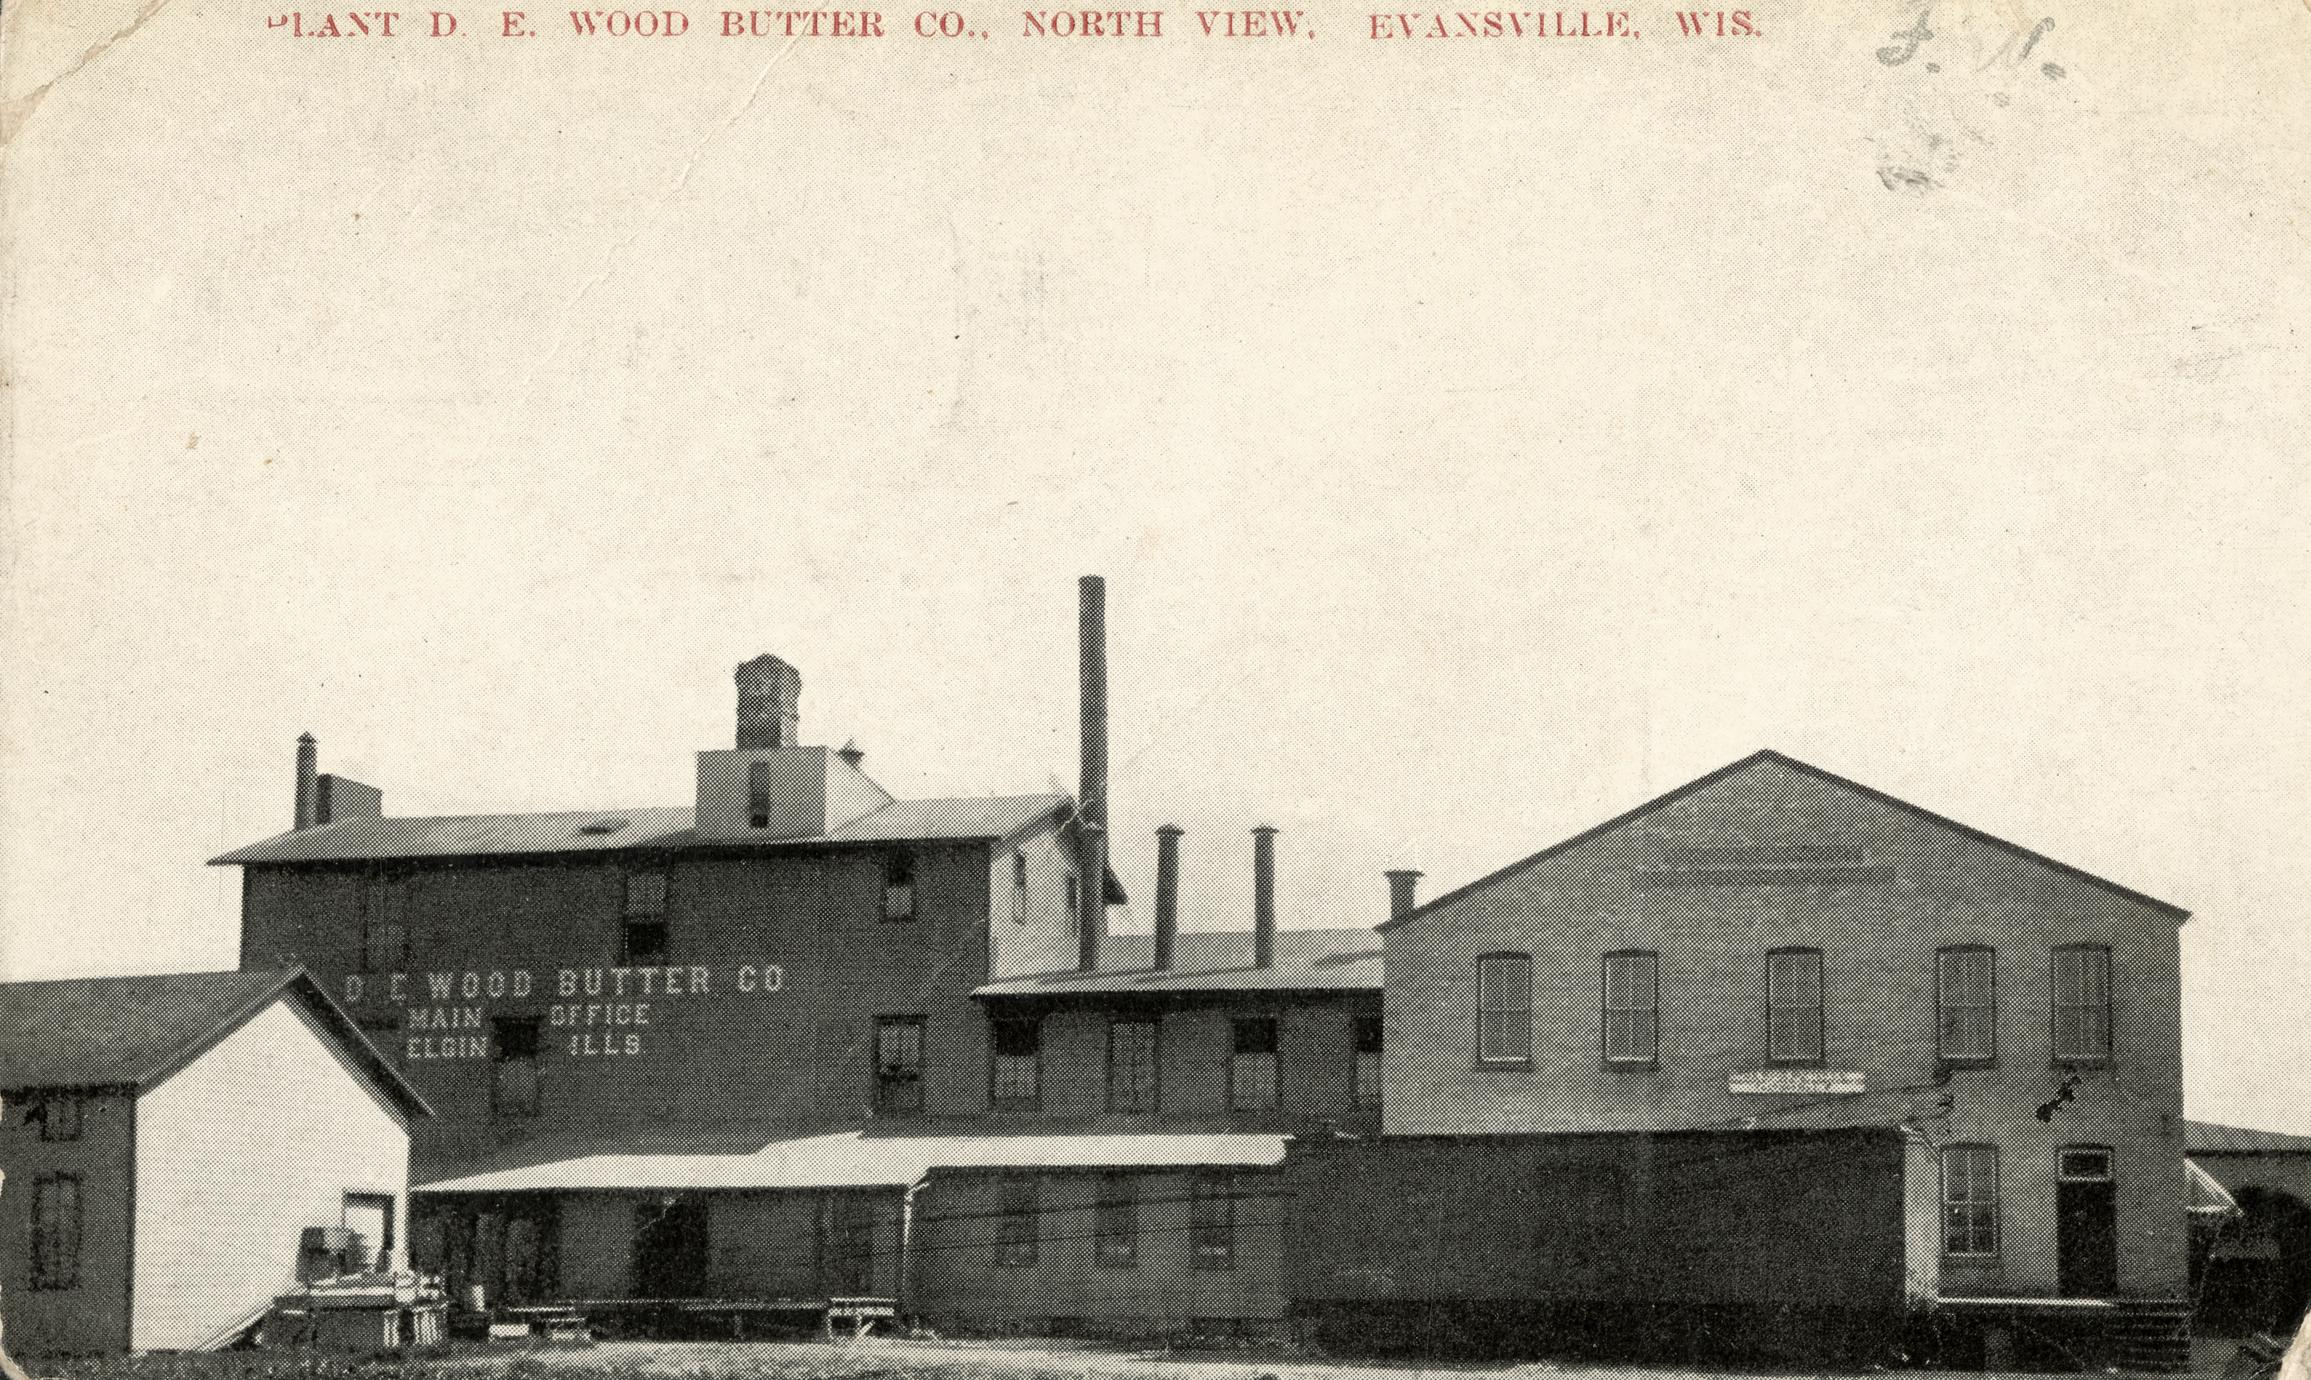 D. E. Wood Butter Co., North View, Evansville, Wisconsin